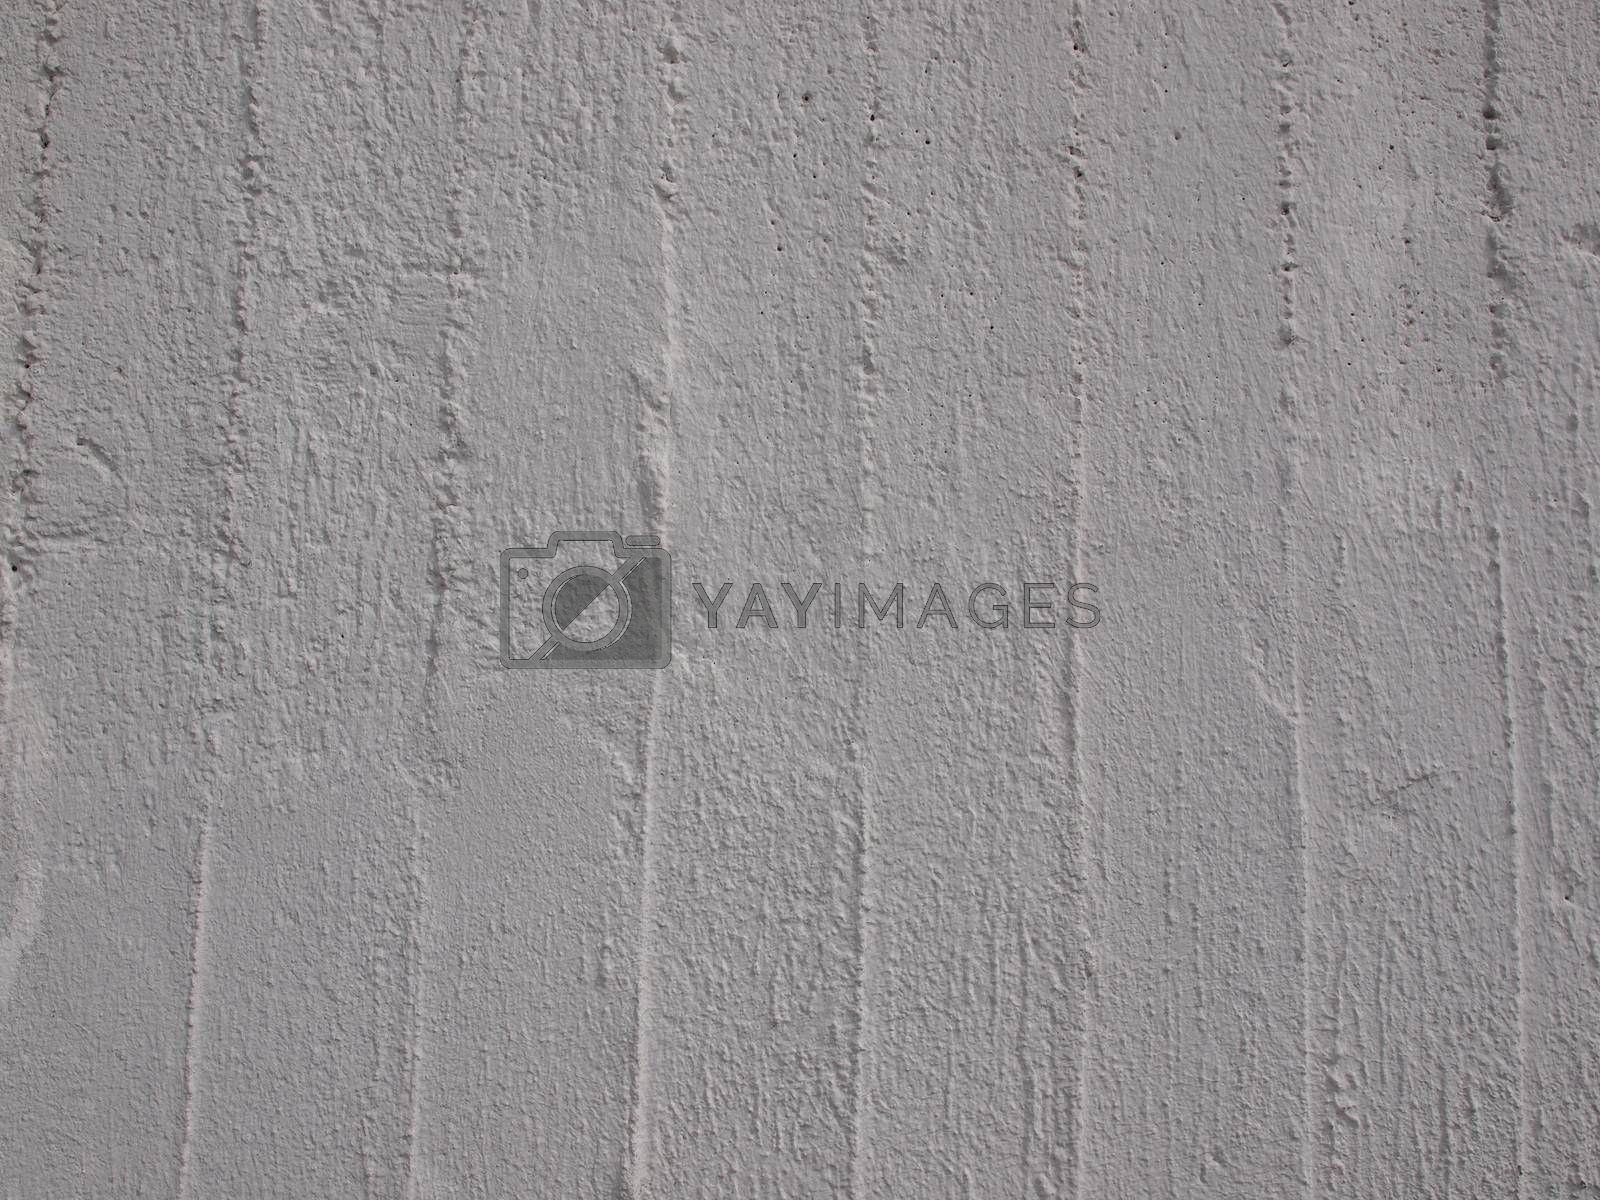 Royalty free image of Concrete background by claudiodivizia